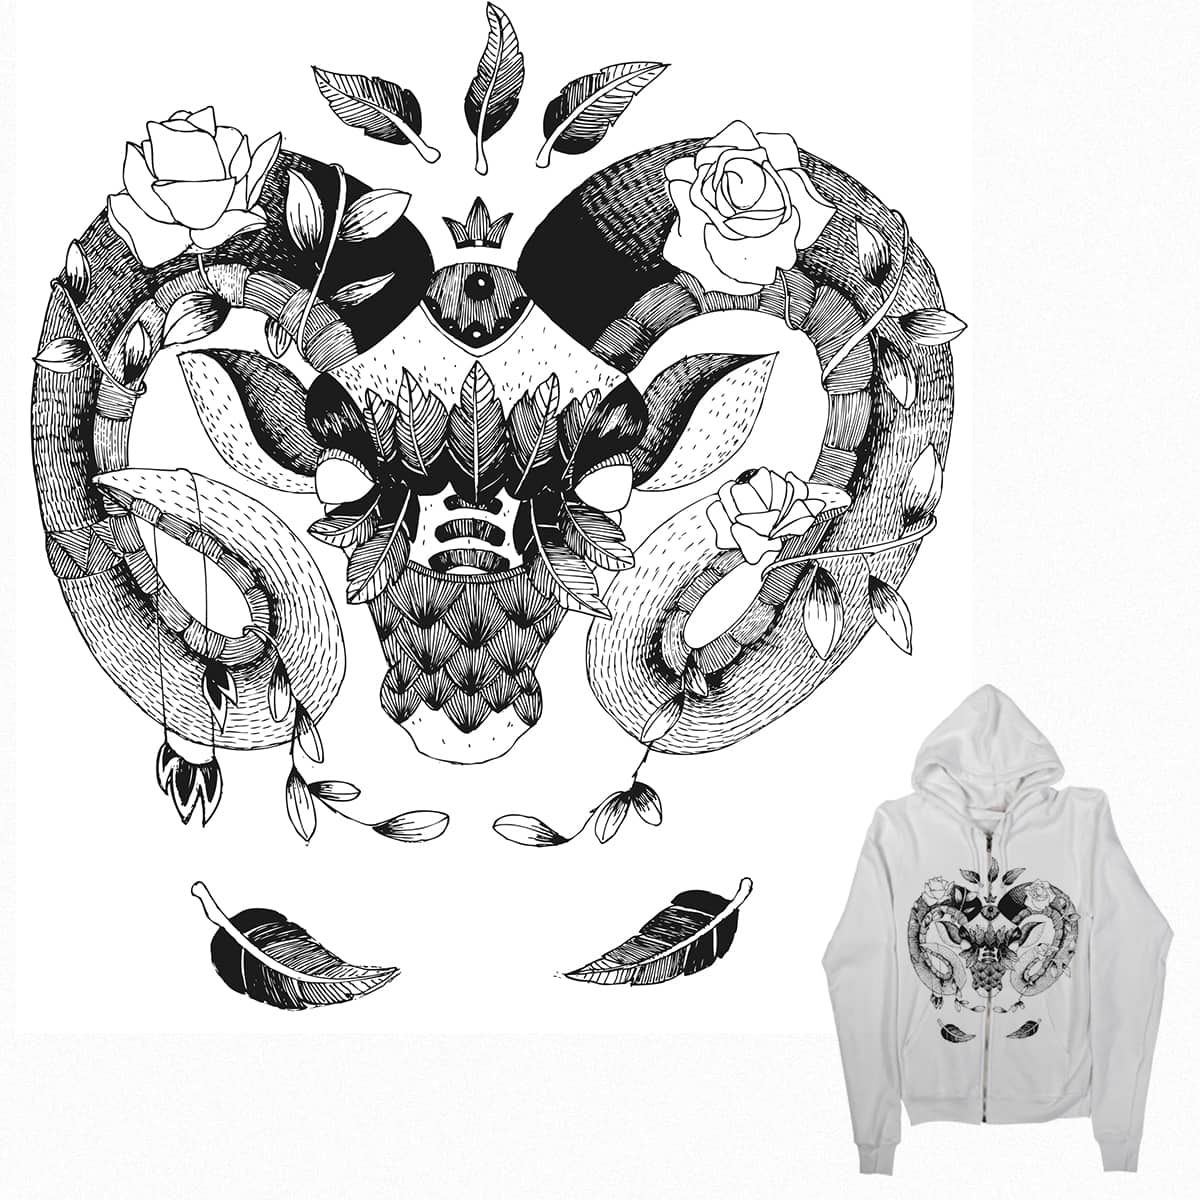 Strong animal by Ingas on Threadless